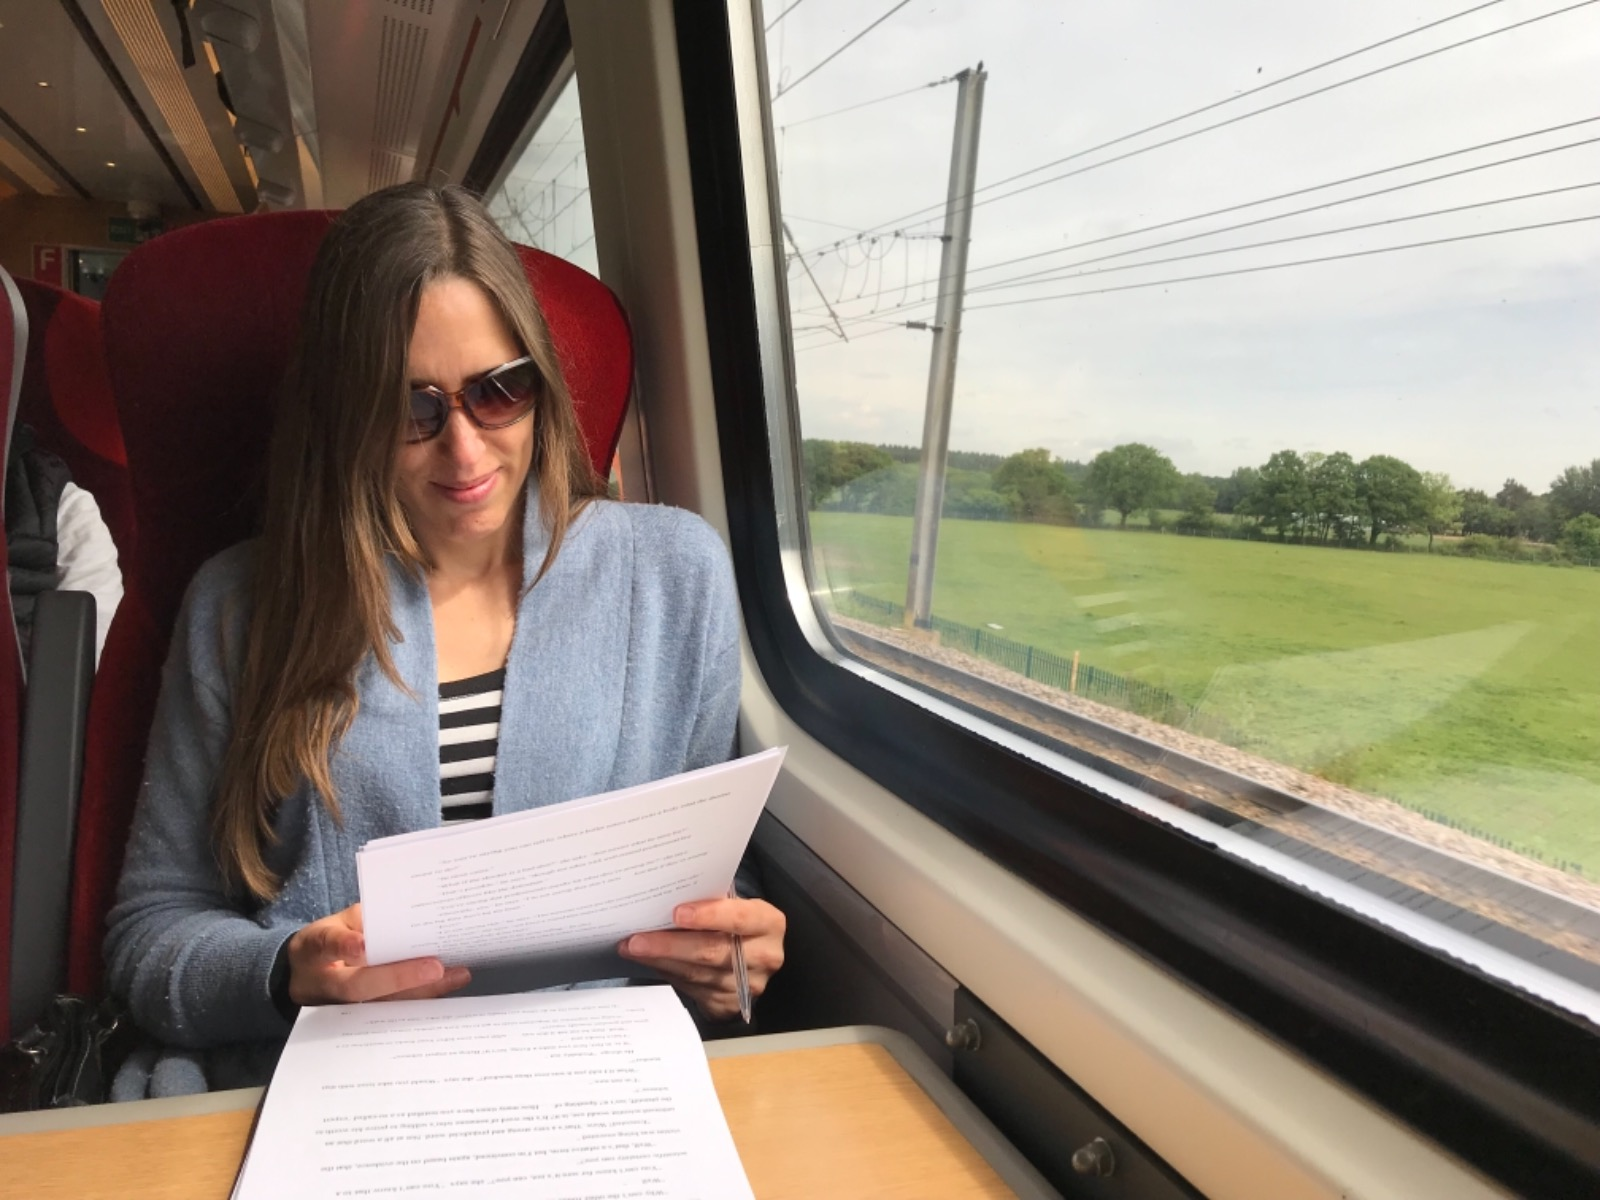 One of my lovely editors working on my new novel on a train to Edinburgh.